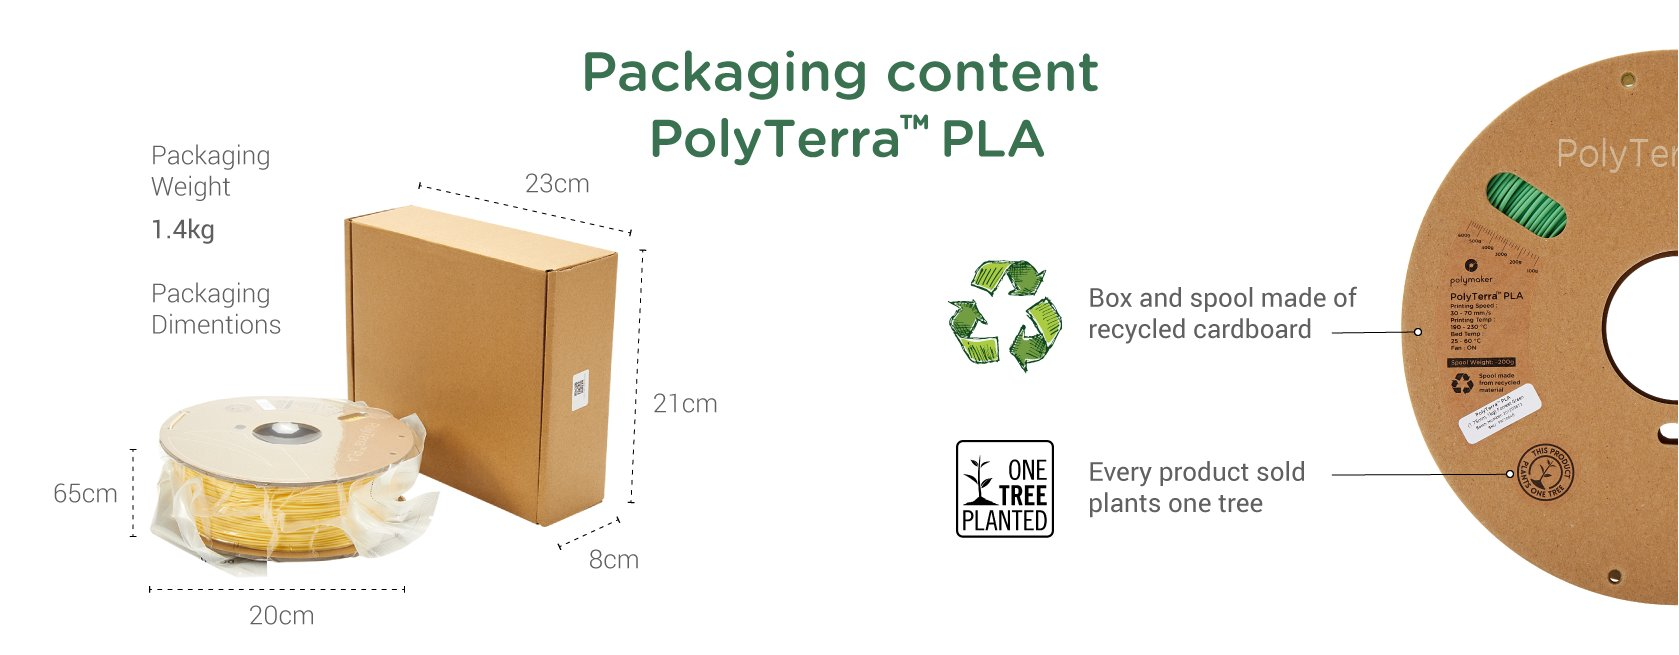 Polymaker-PolyTerra-Packaging-Content